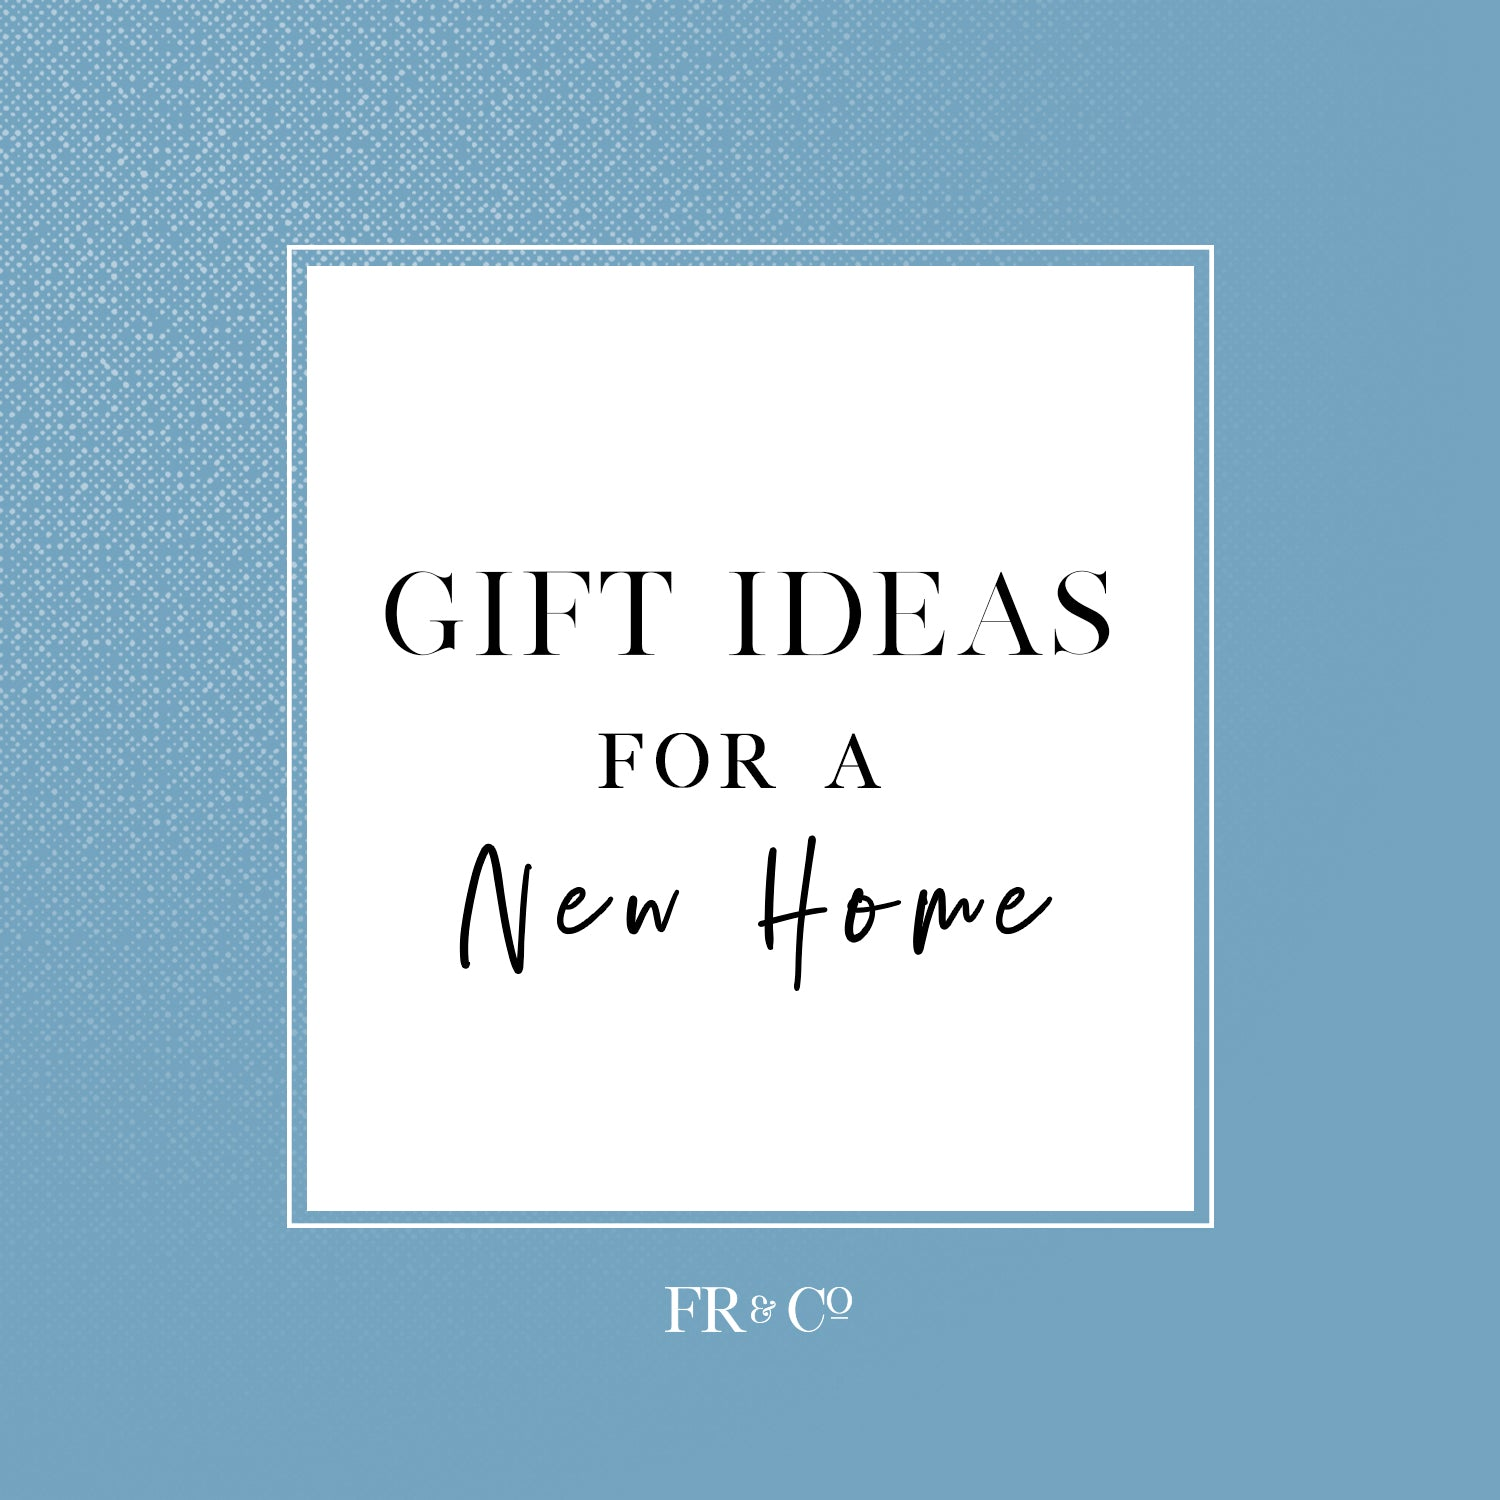 Gift Ideas for a New Home